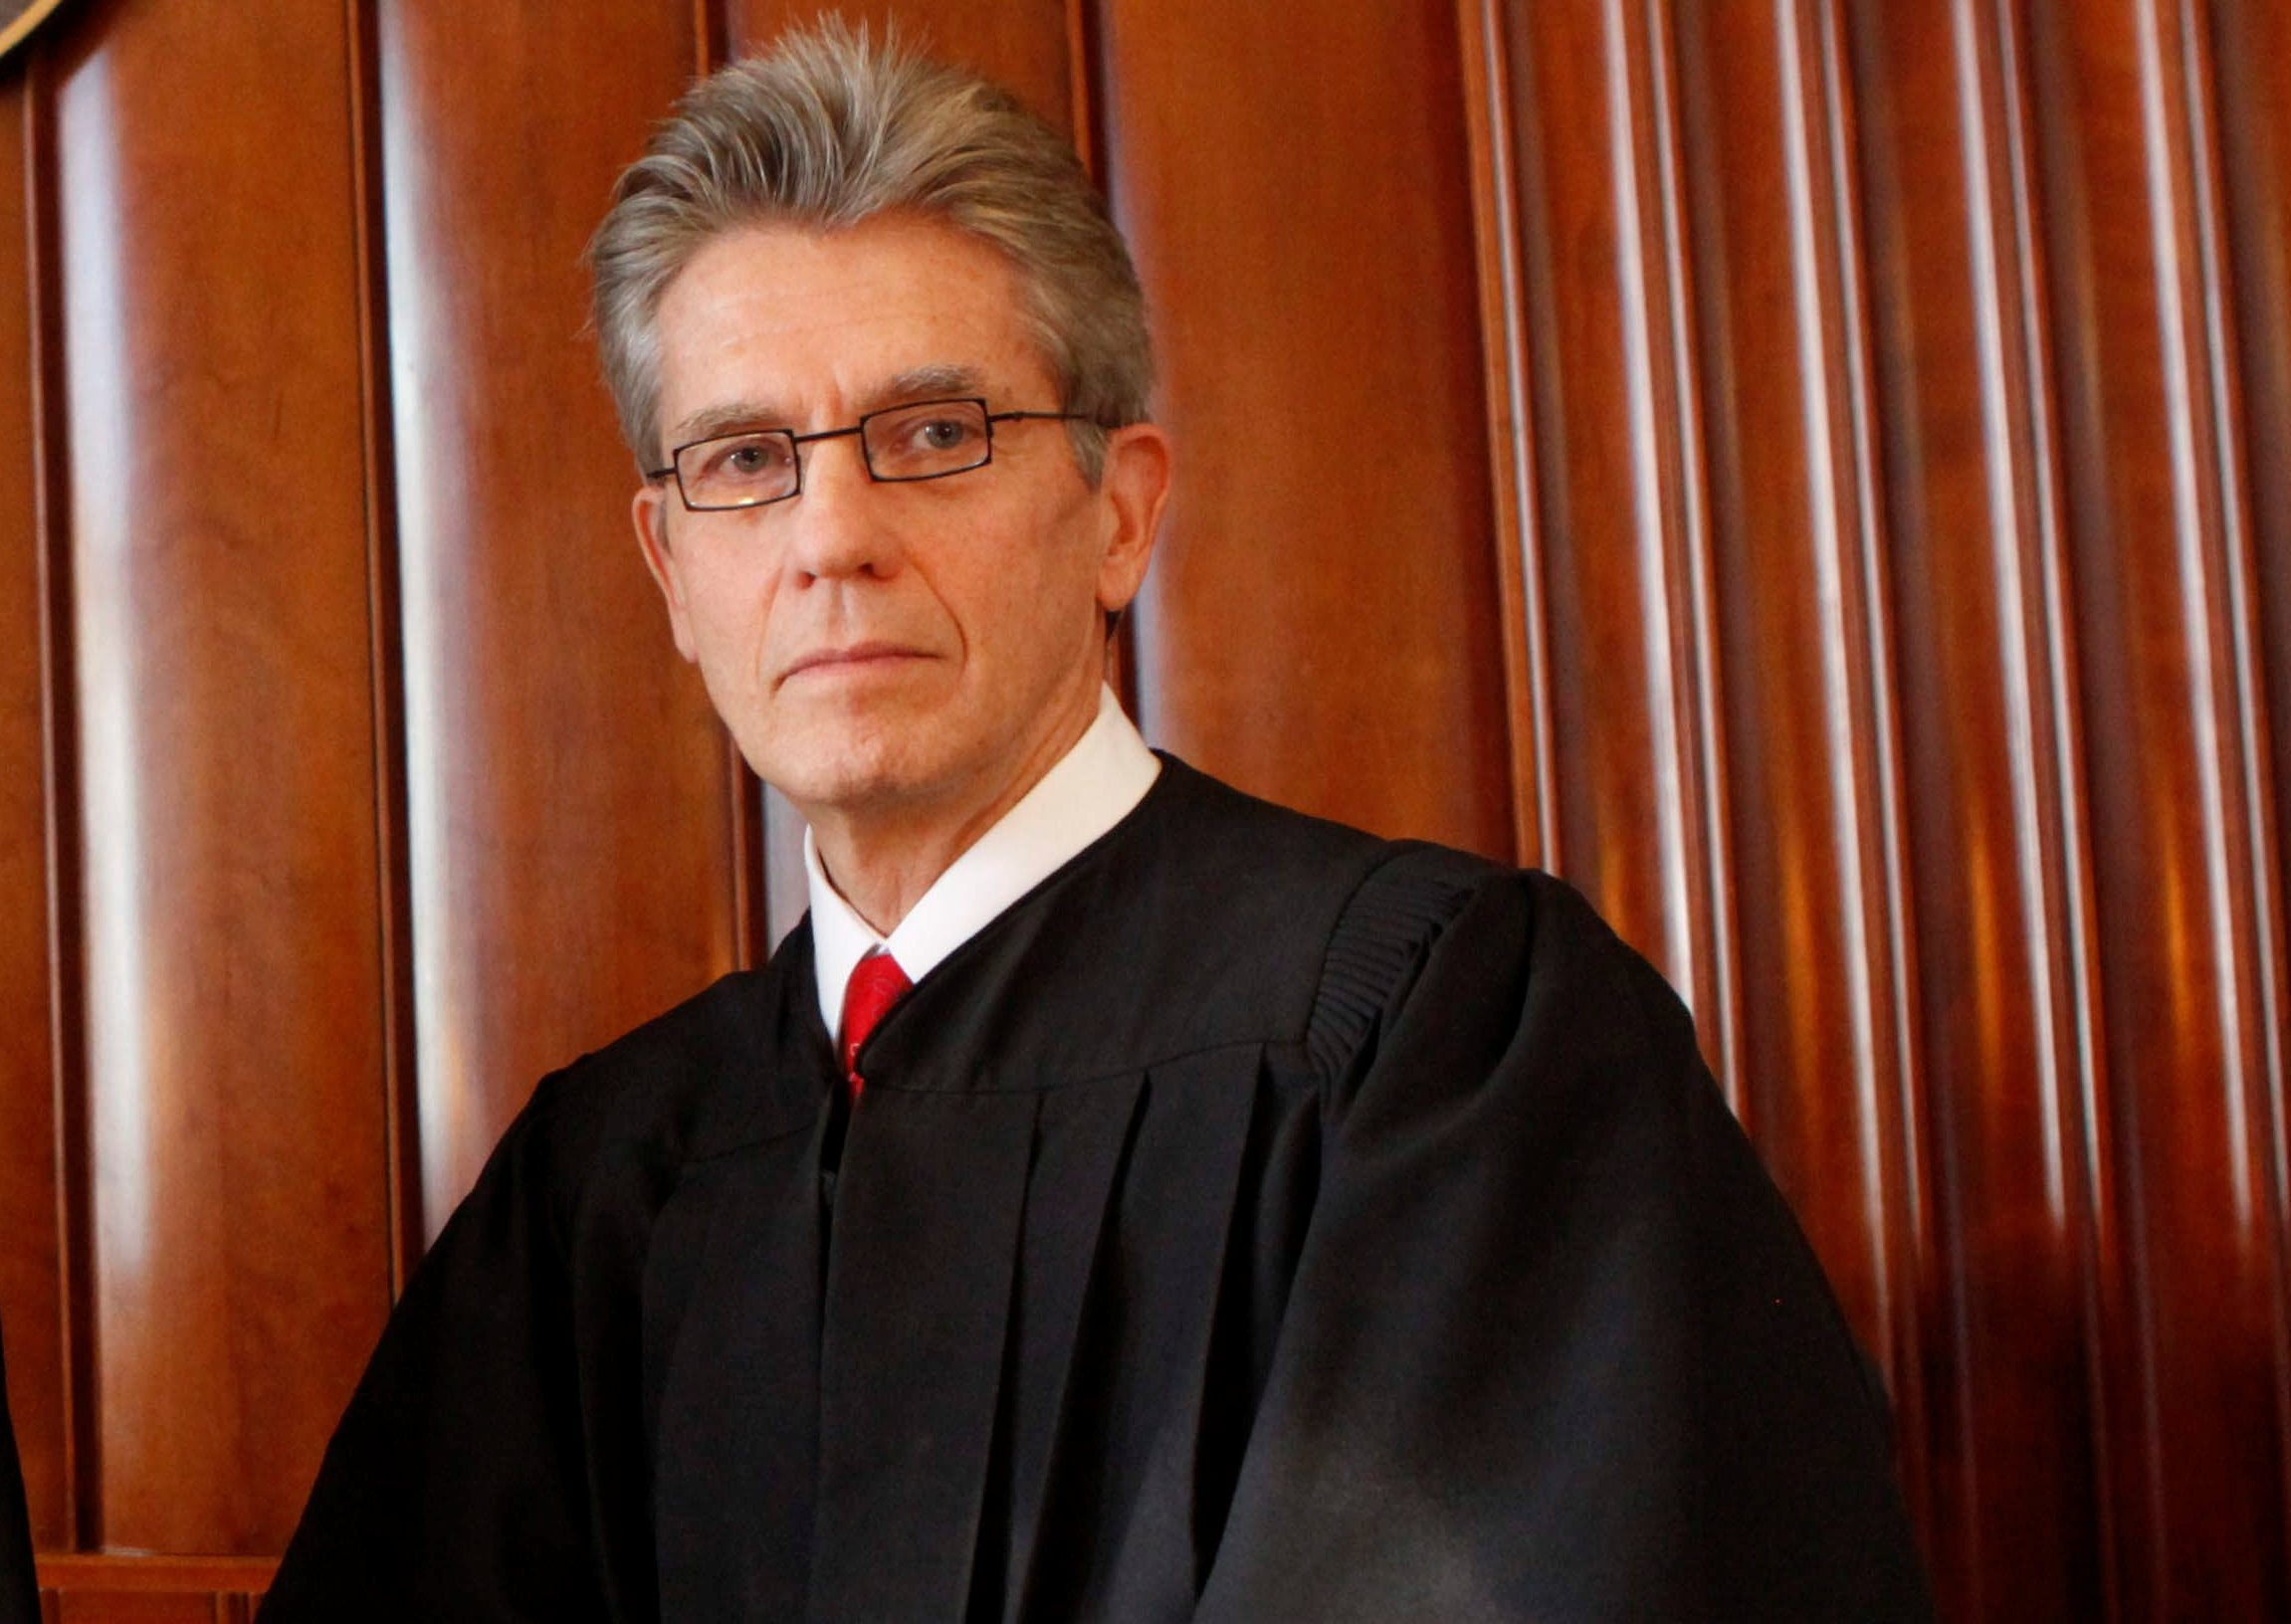 Chief U.S. District Judge William M. Skretny finds New York SAFE Act is constitutional but rejected the law's seven-round magazine limit.